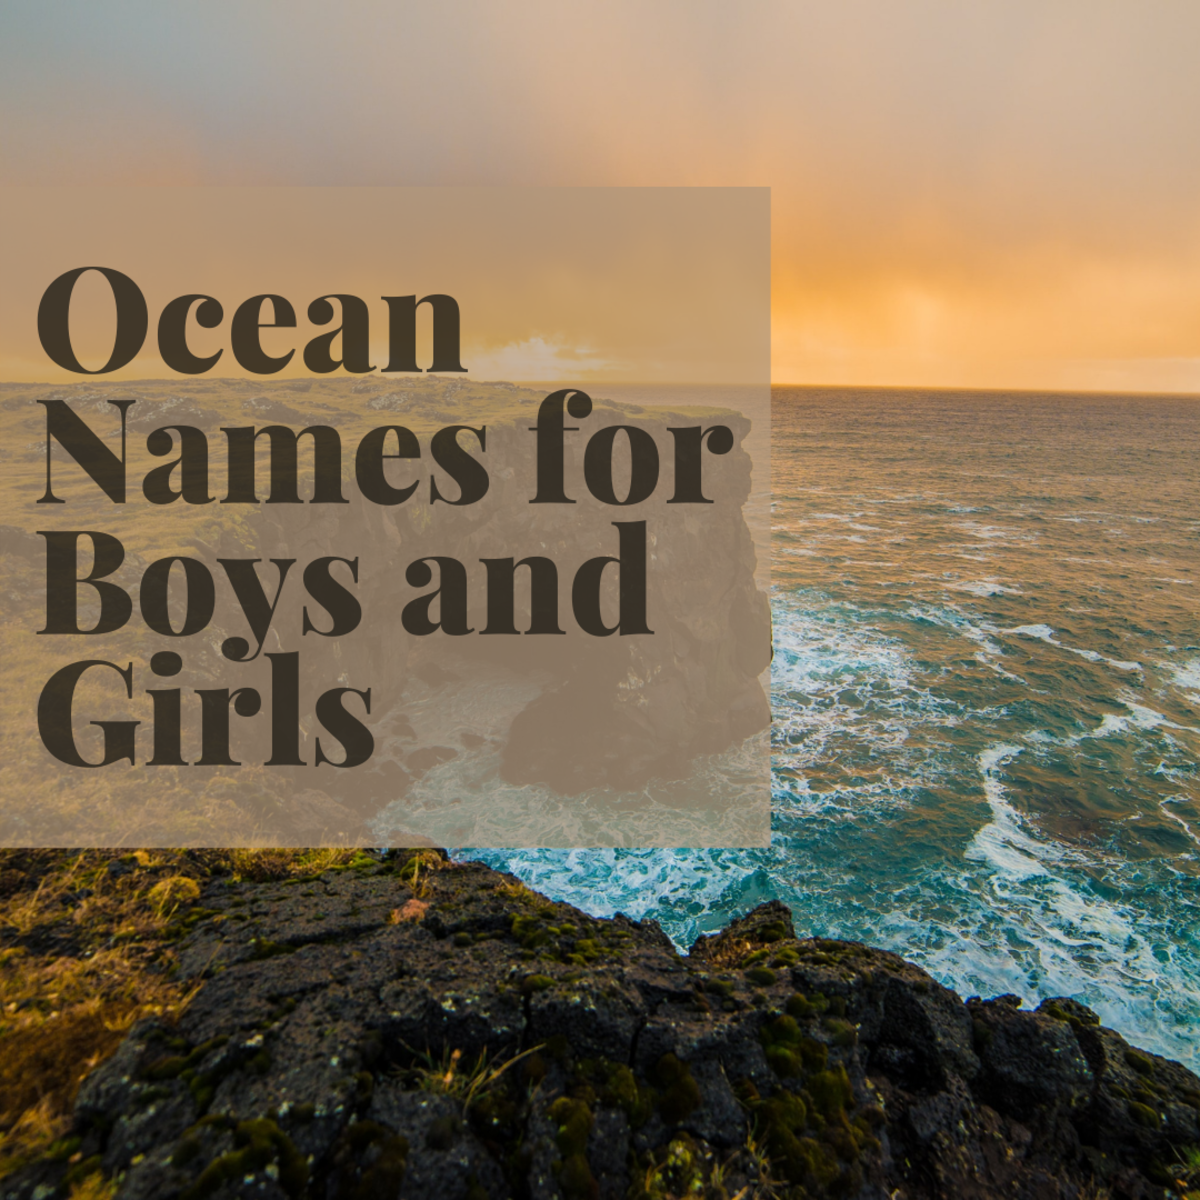 The ocean is an endless source of inspiration for new baby names.